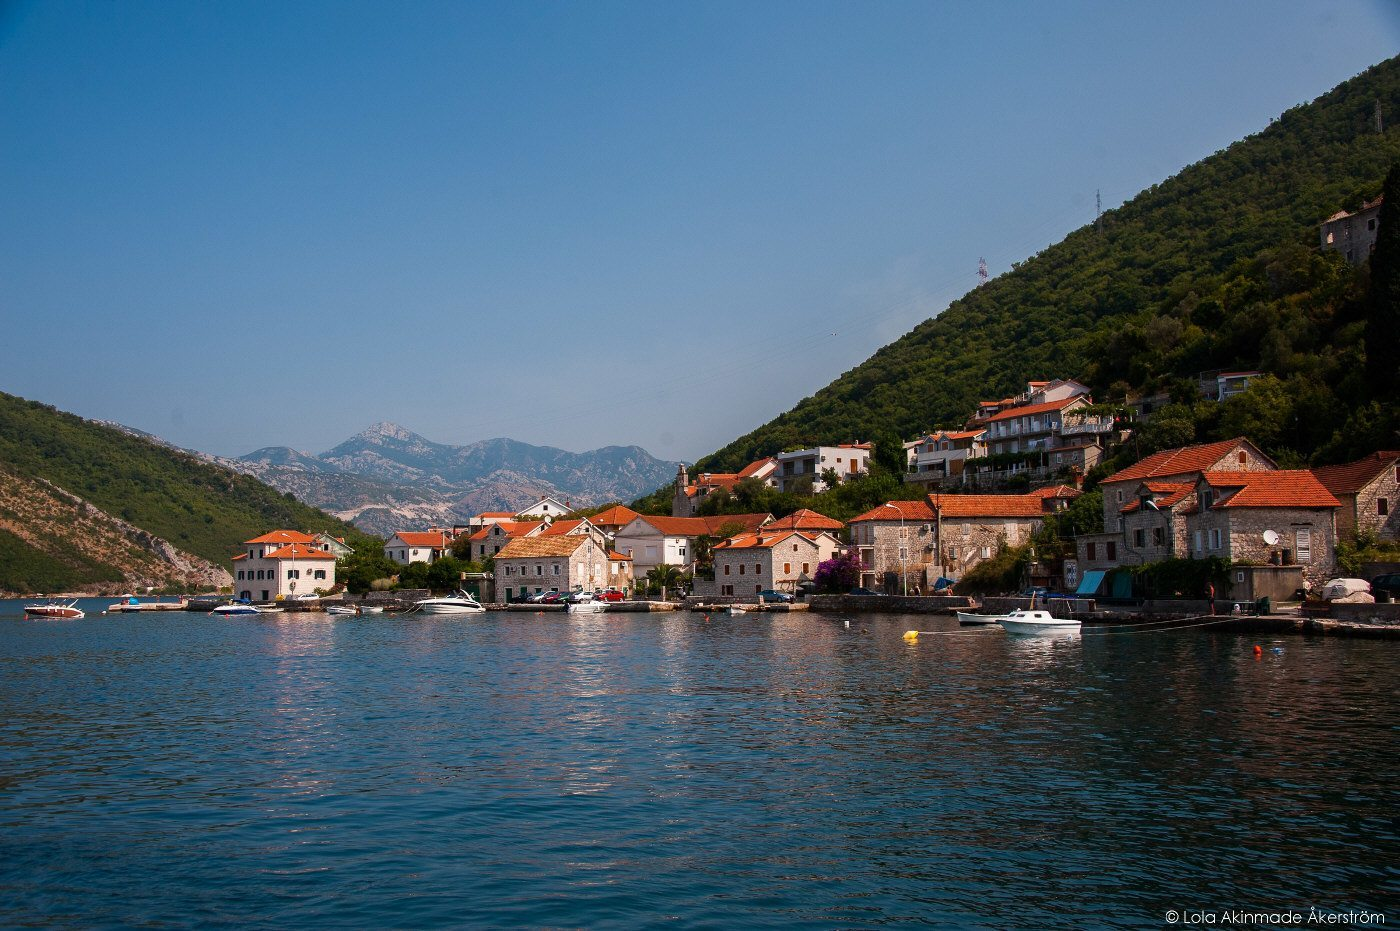 In Photos: Crossing the Bay of Kotor